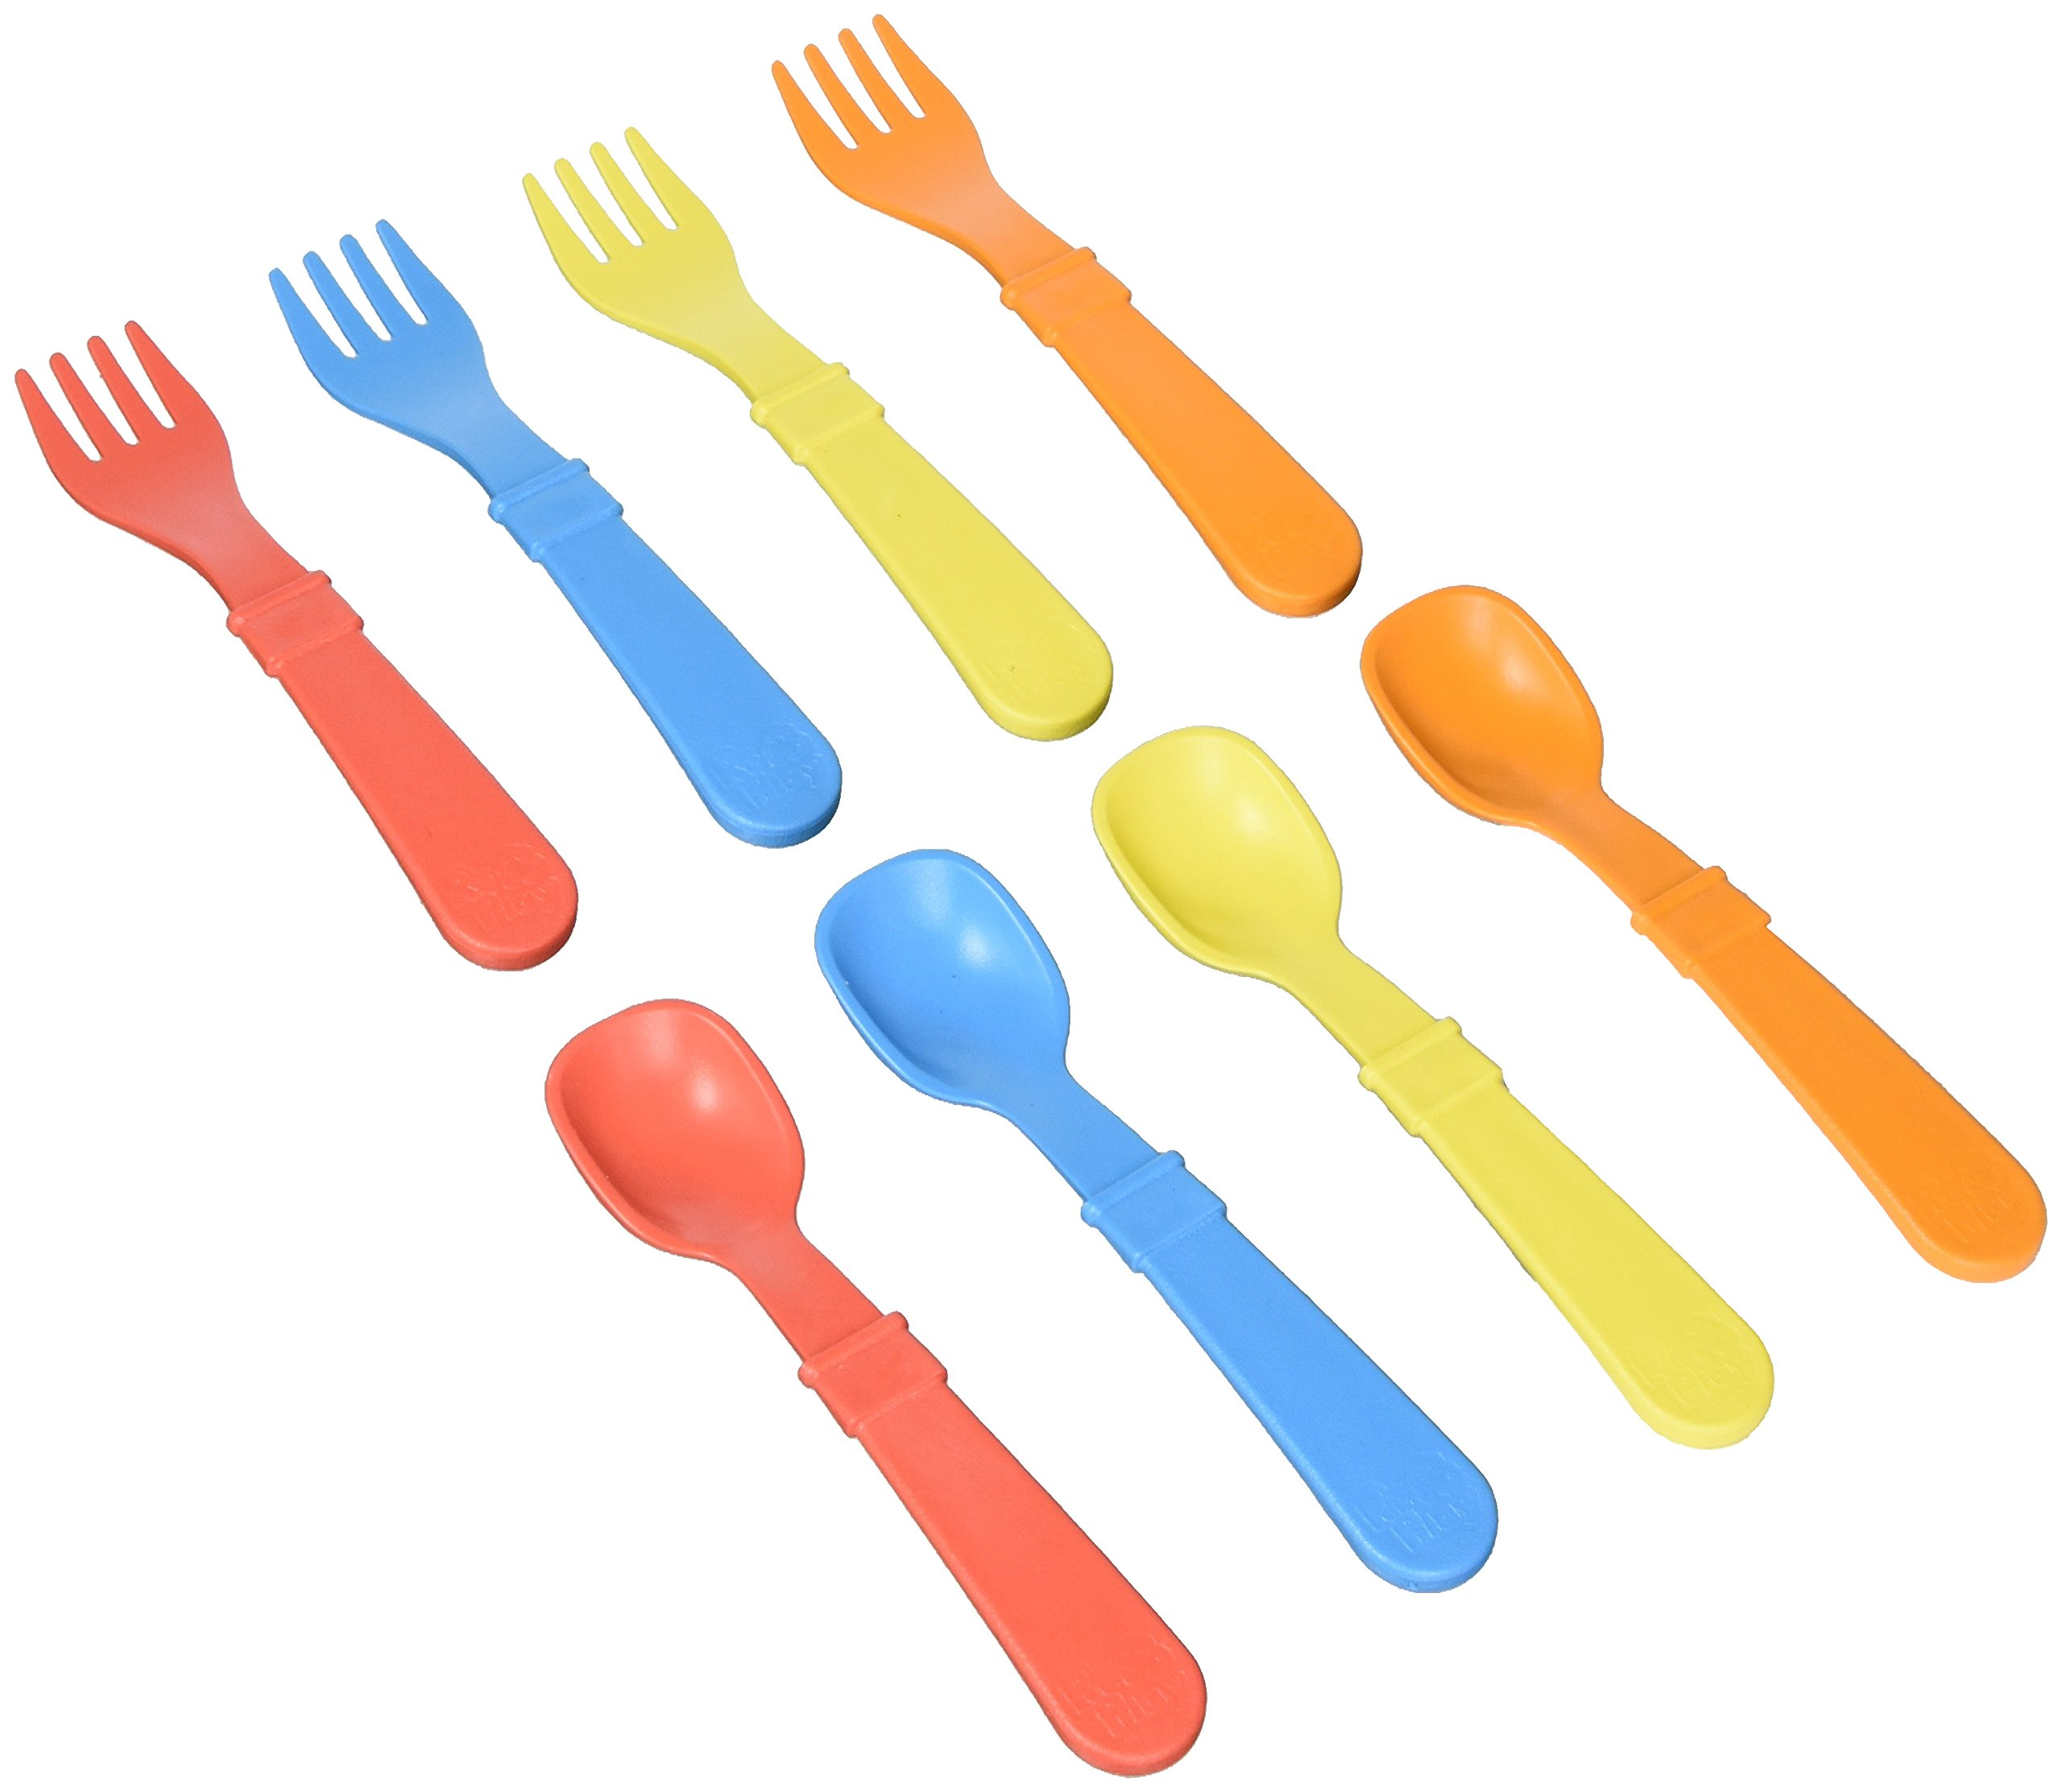 Re-Play 8 Count Utensils (Red/Blue/Yellow)